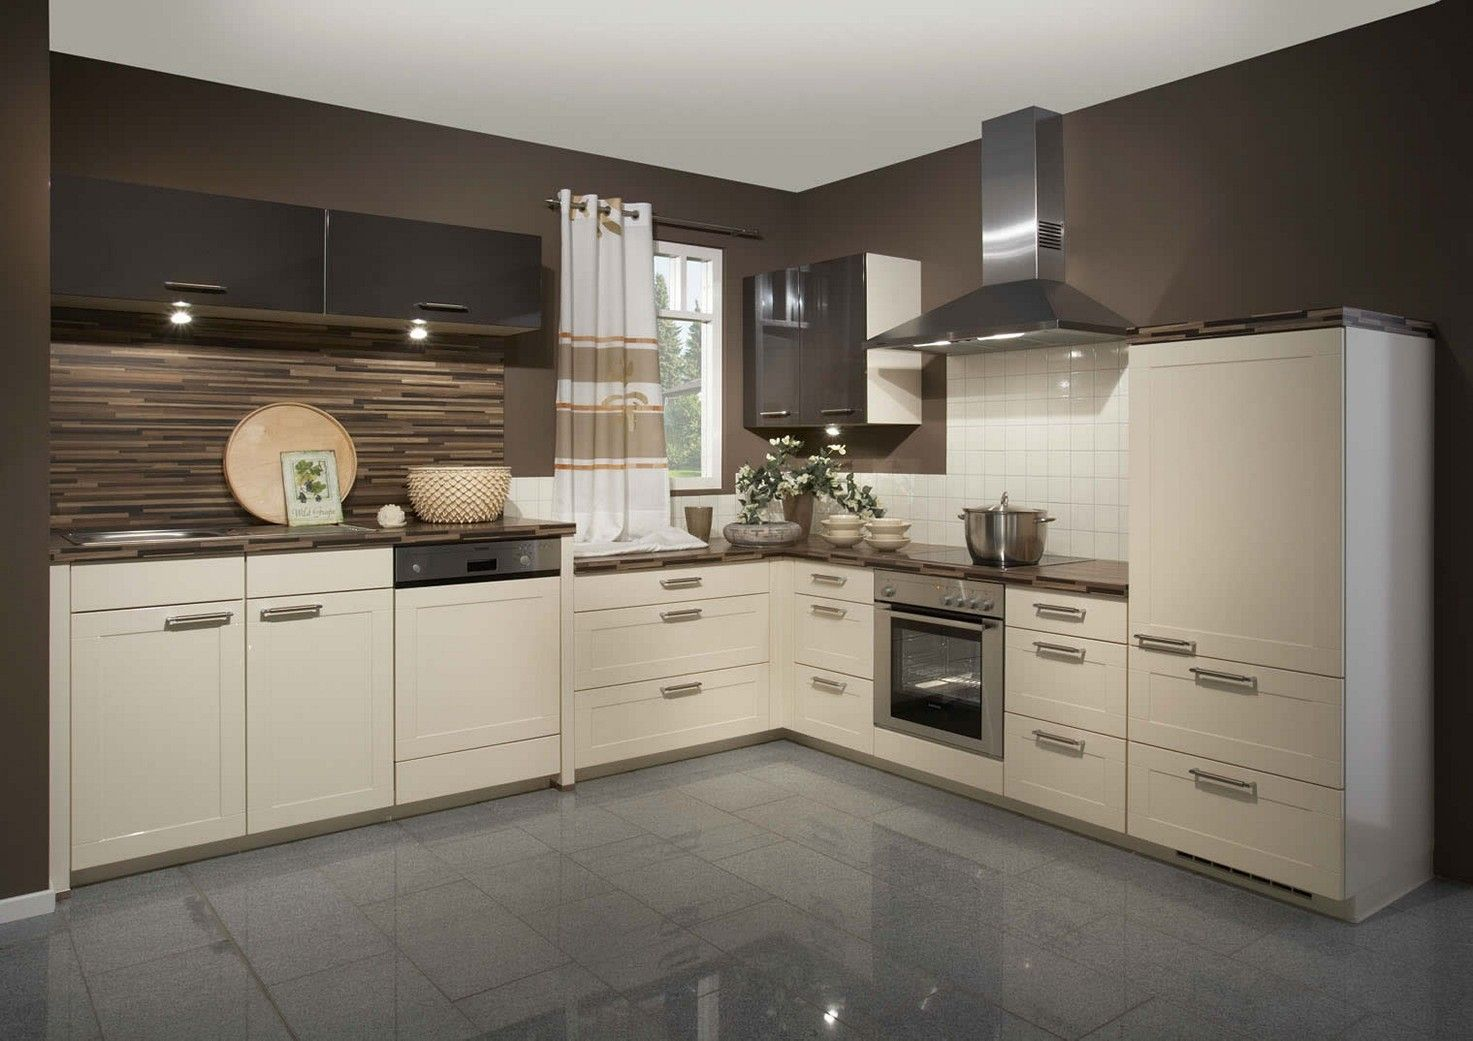 Küche Magnolia Welche Wandfarbe Cream Kitchen Cabinets With Grey Walls | Kuchnia | Gloss